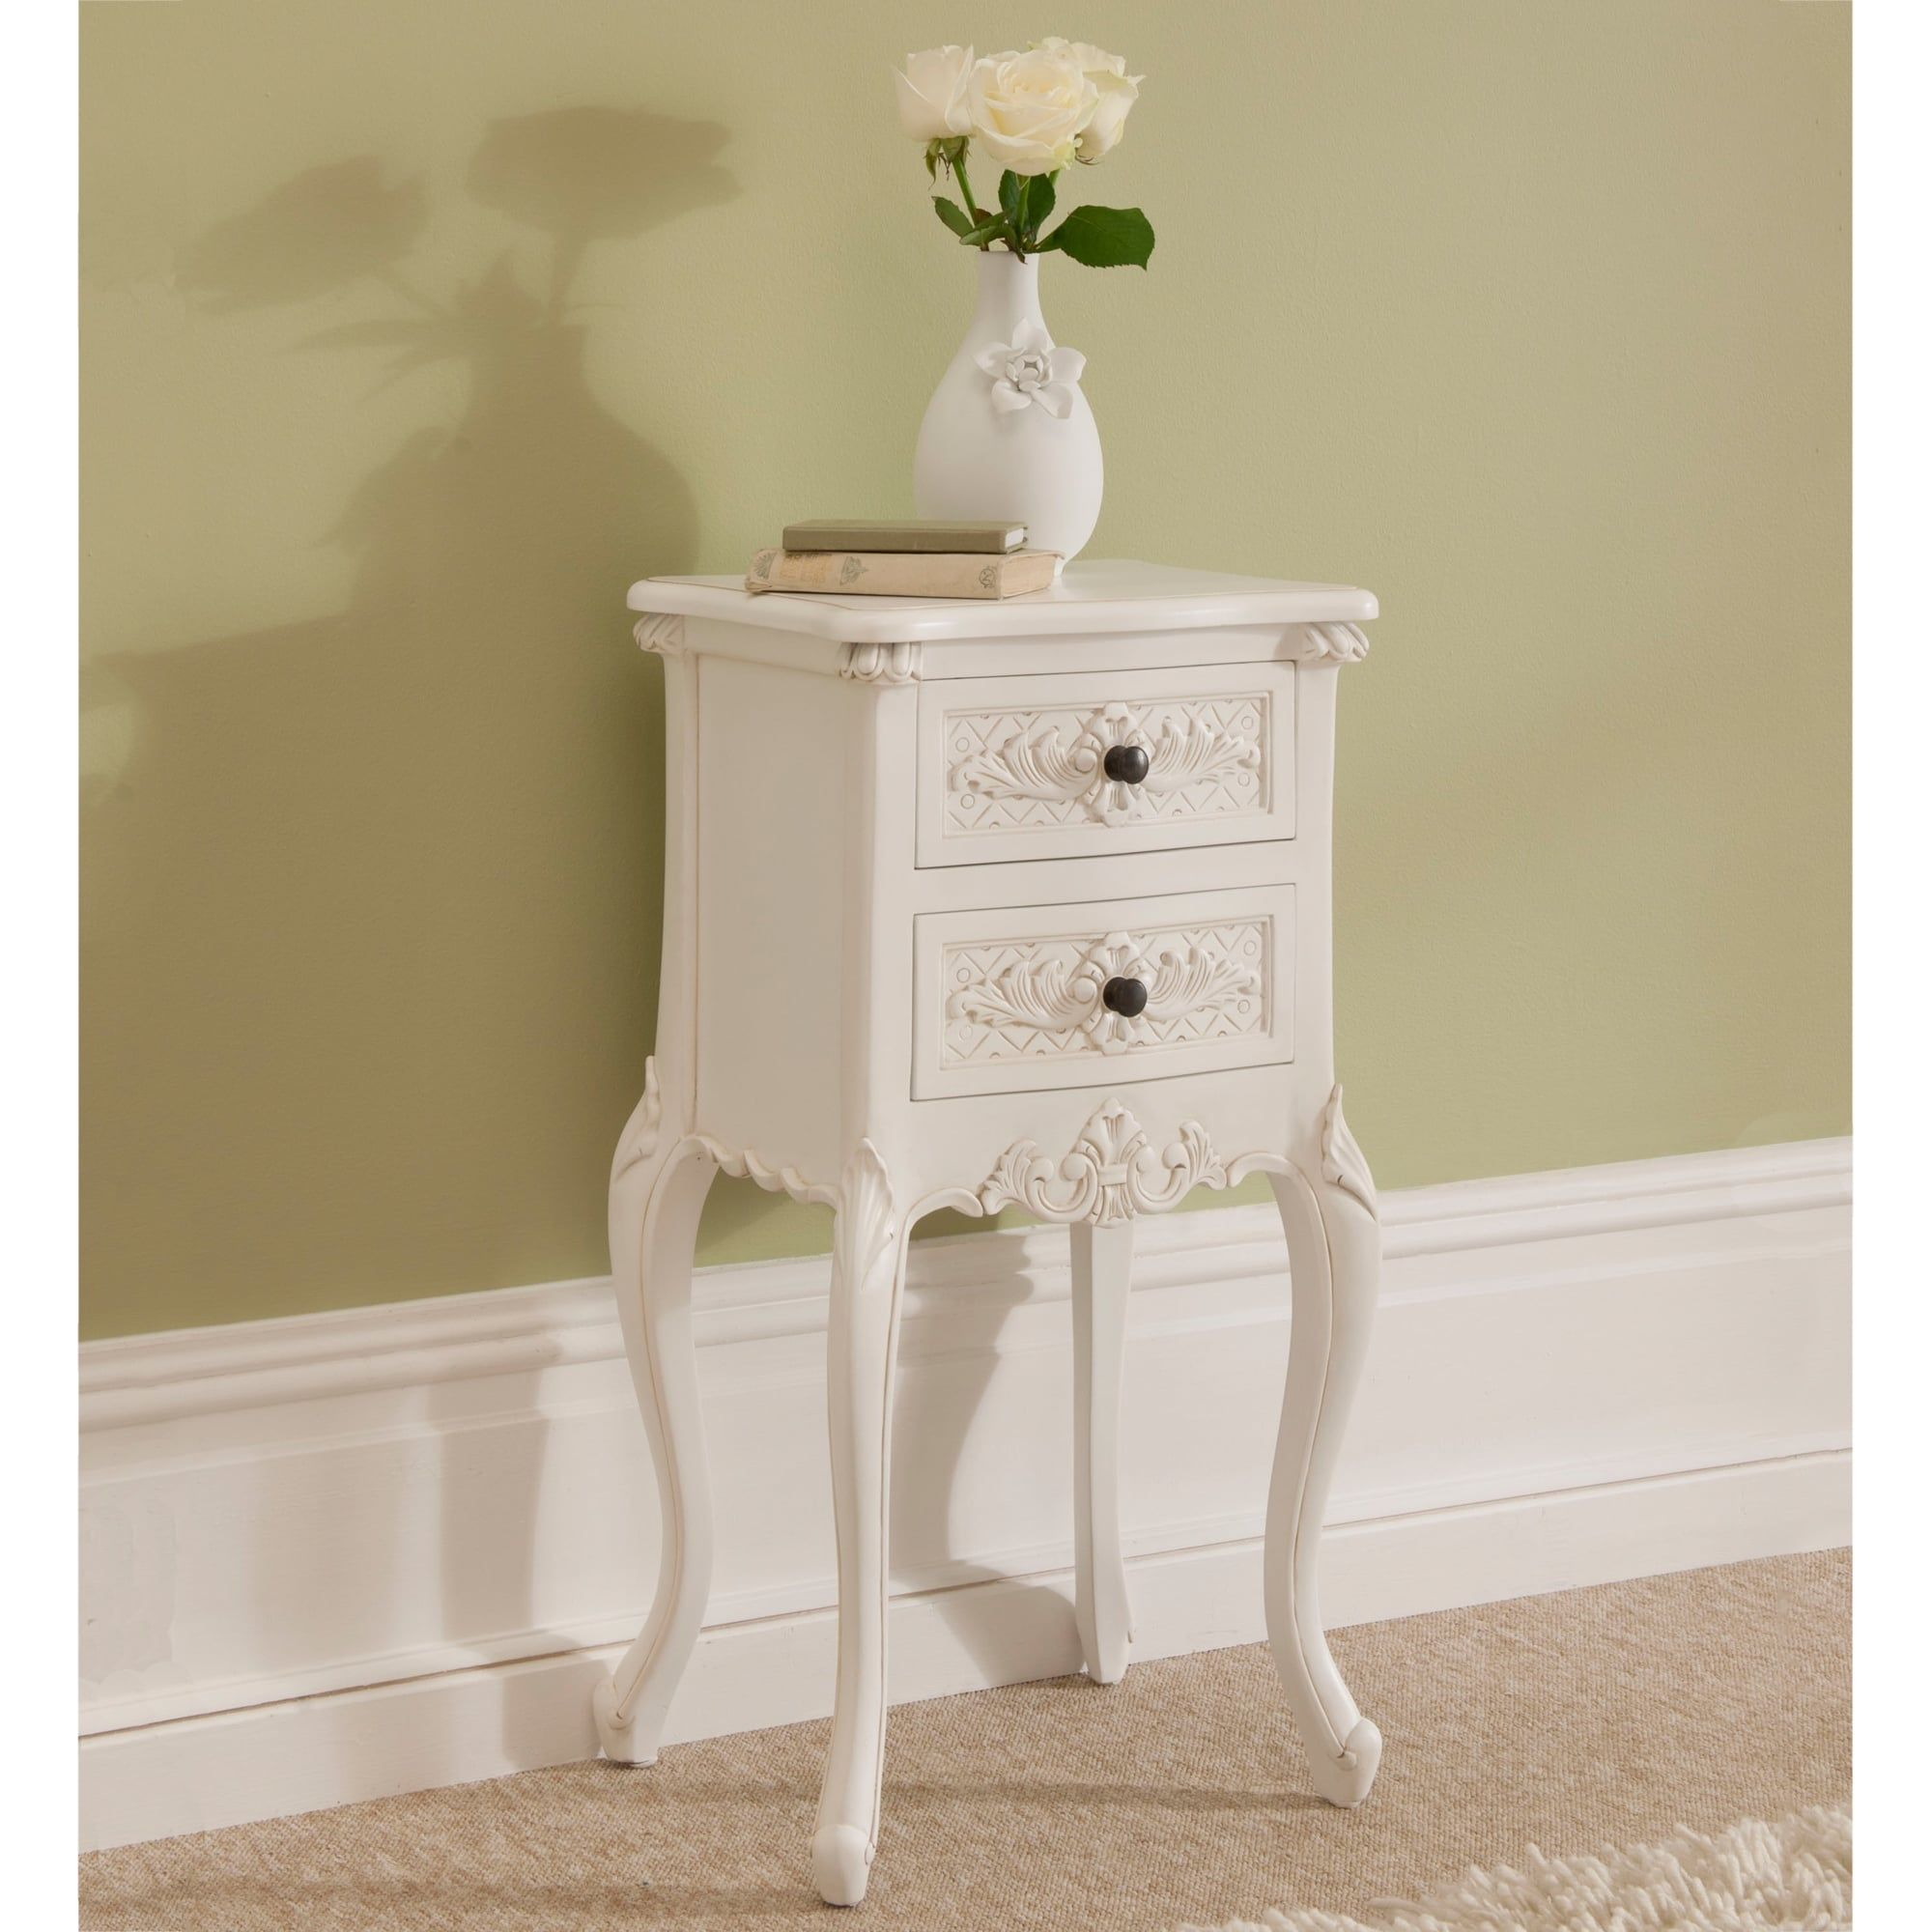 Rococo Shabby Chic Antique Style Bedside Table Similar To